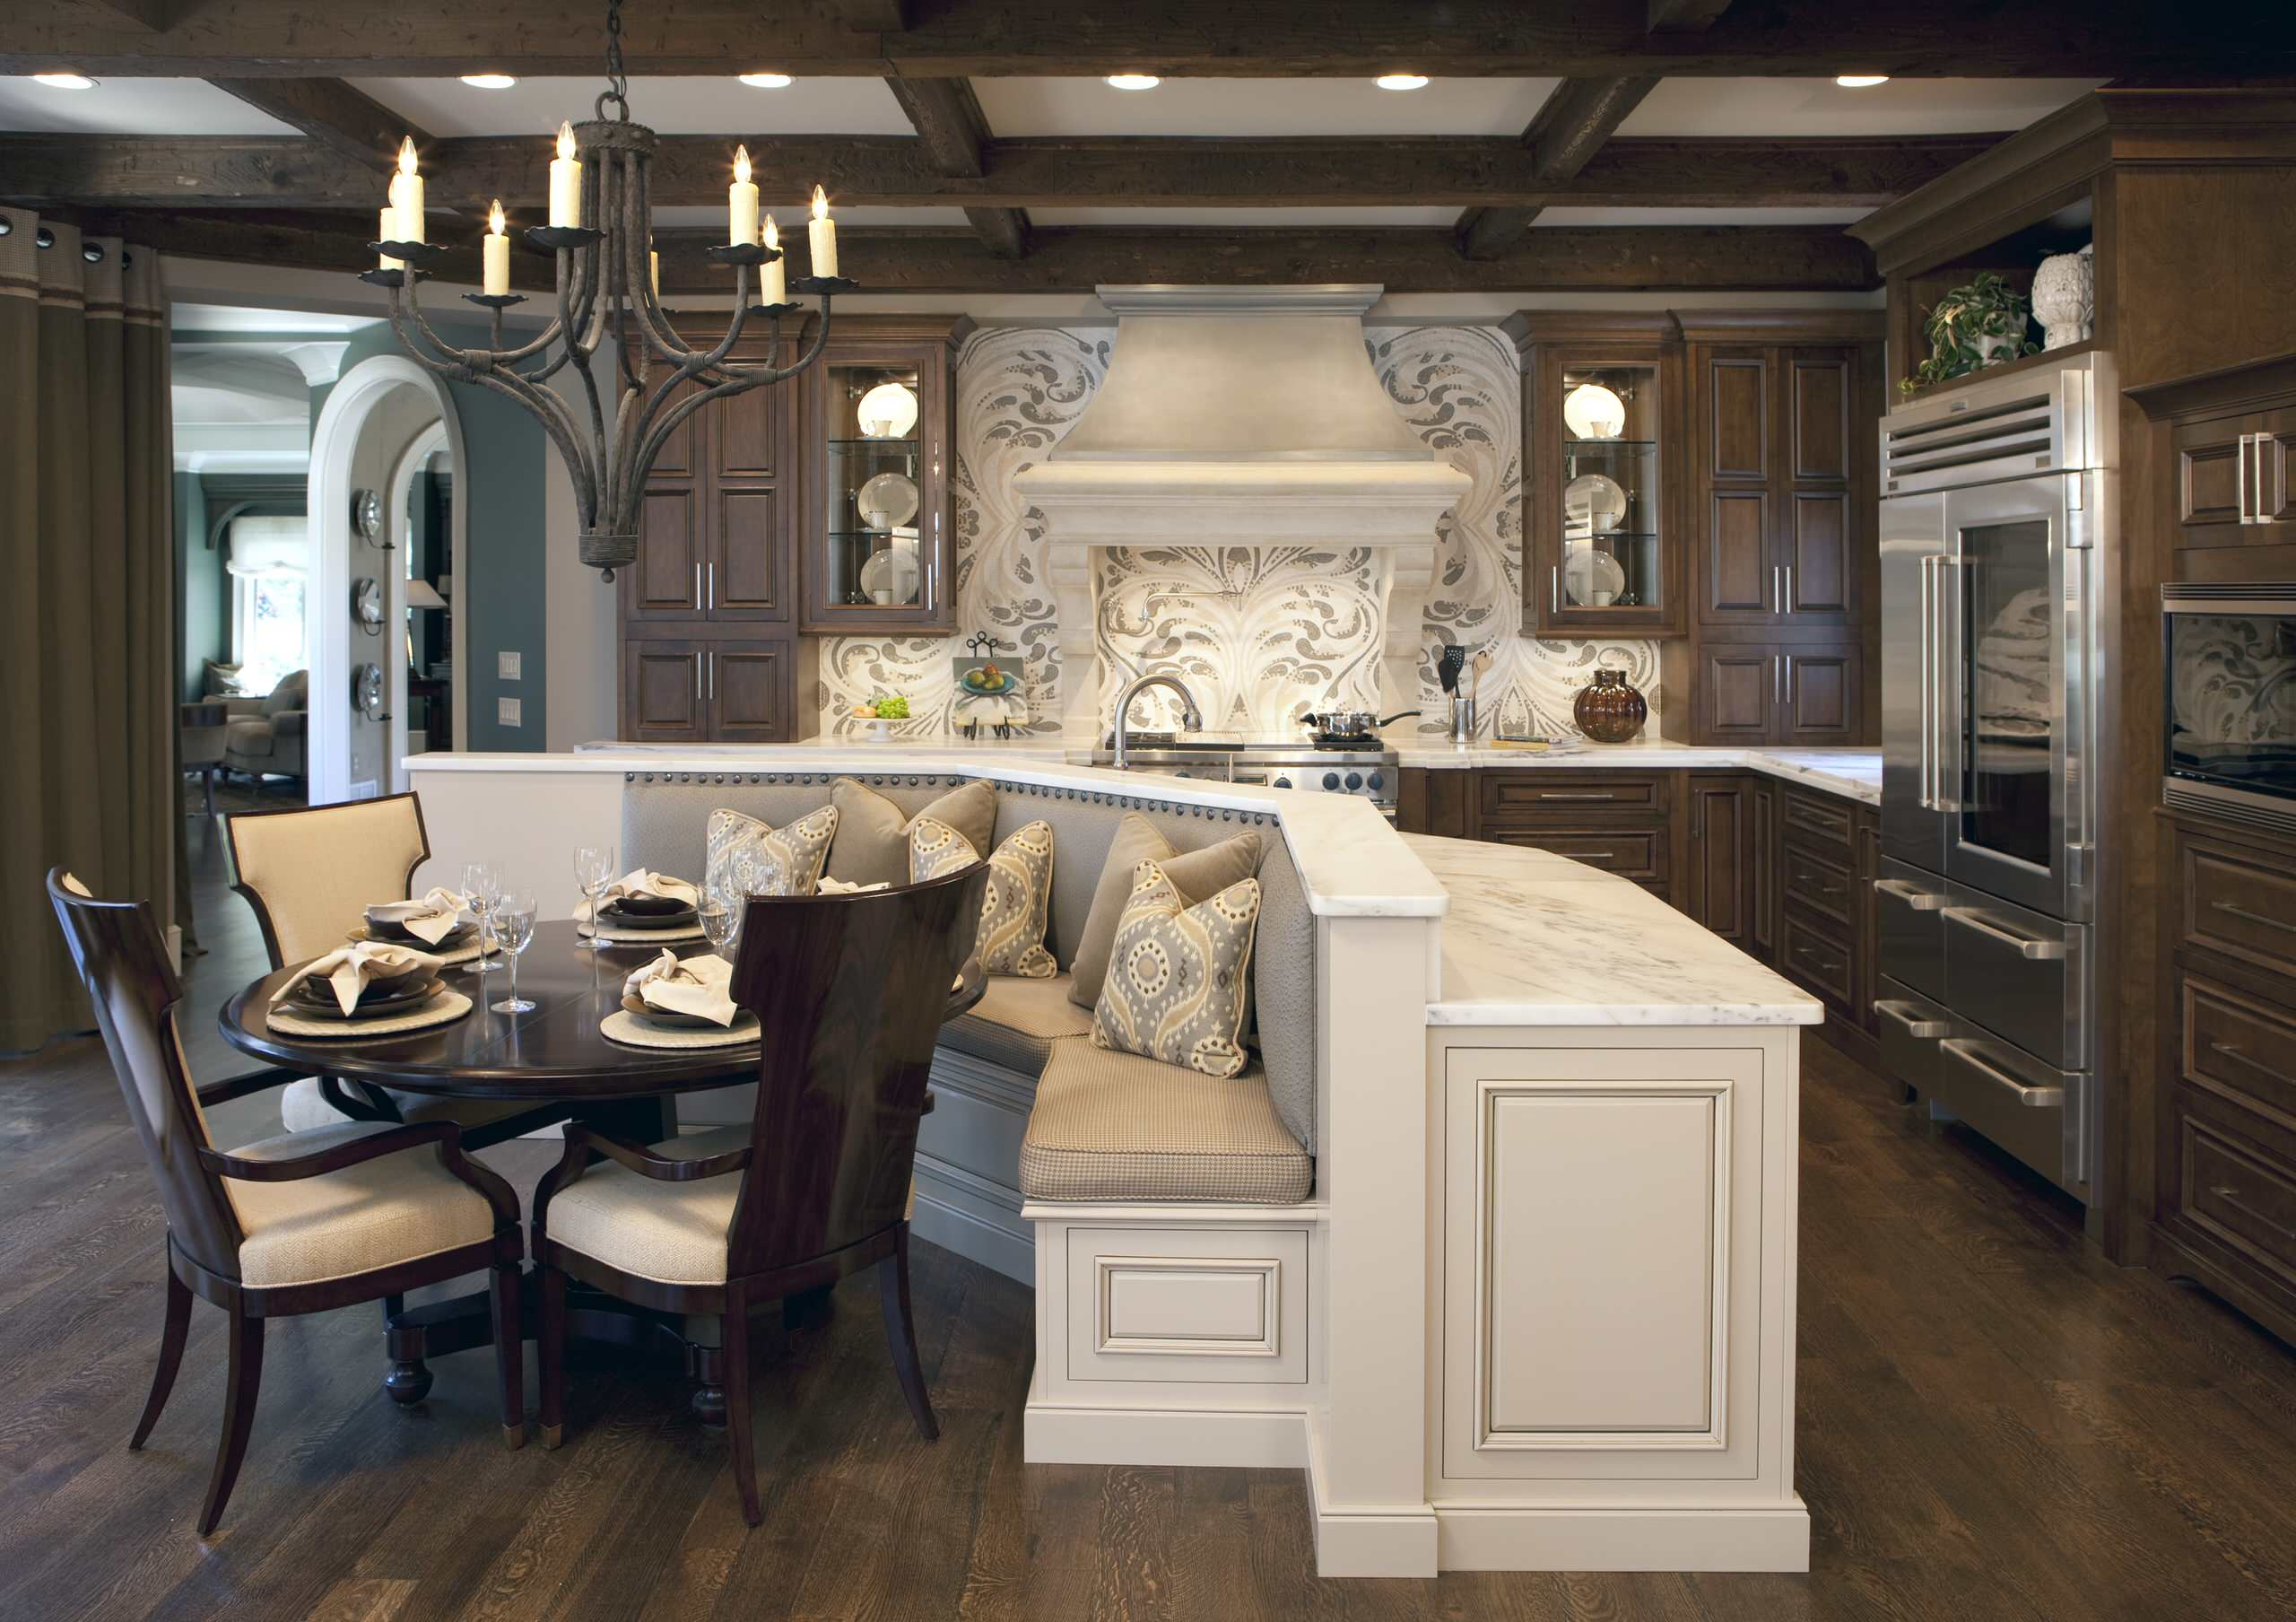 75 Beautiful L Shaped Kitchen With An Island Pictures Ideas April 2021 Houzz